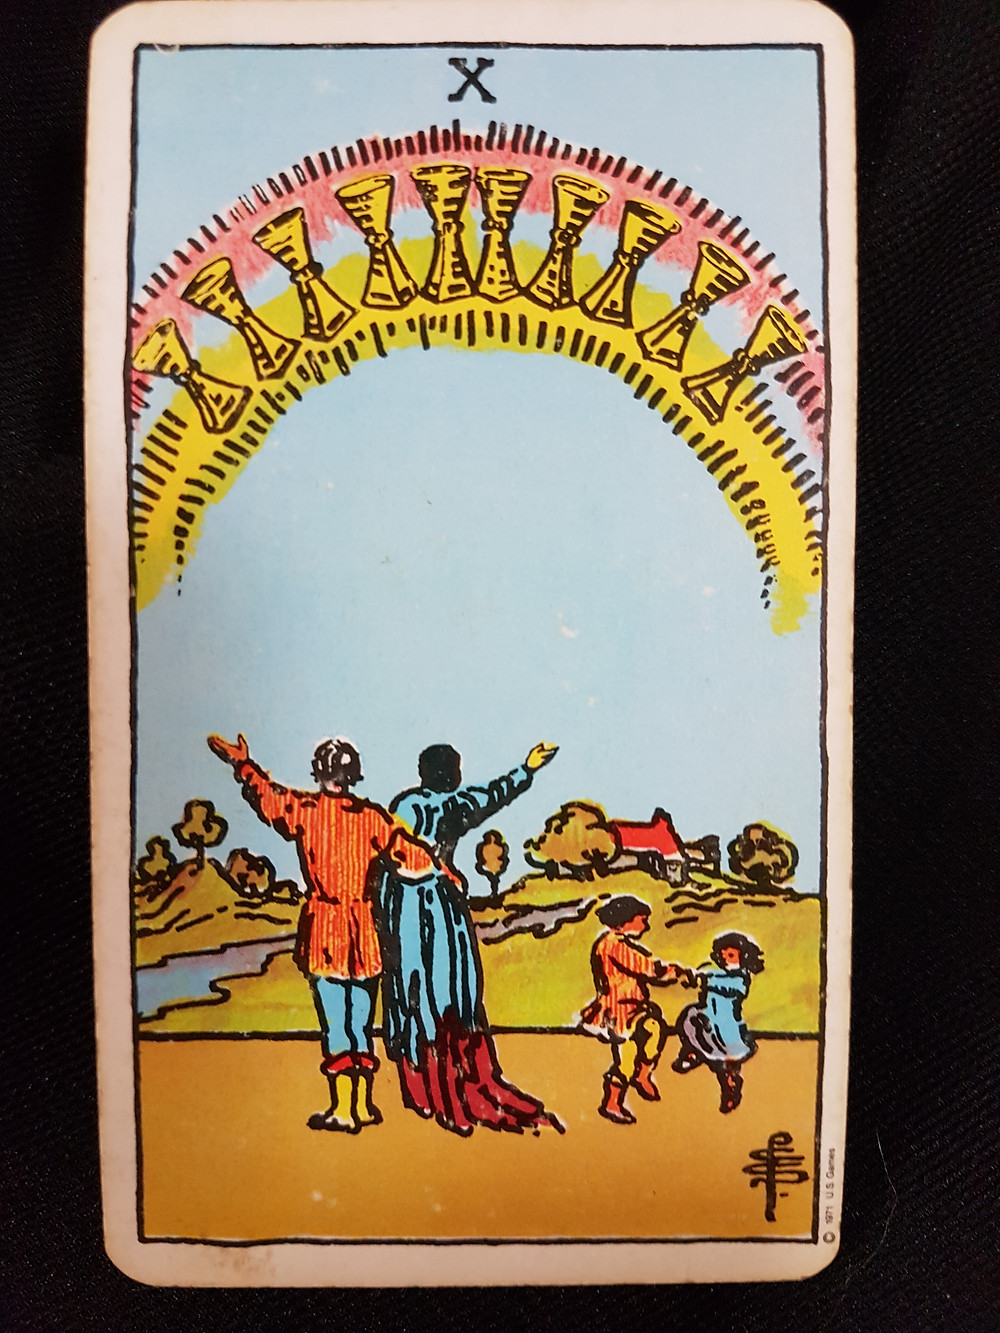 10 of Cups - lynsreadings.com